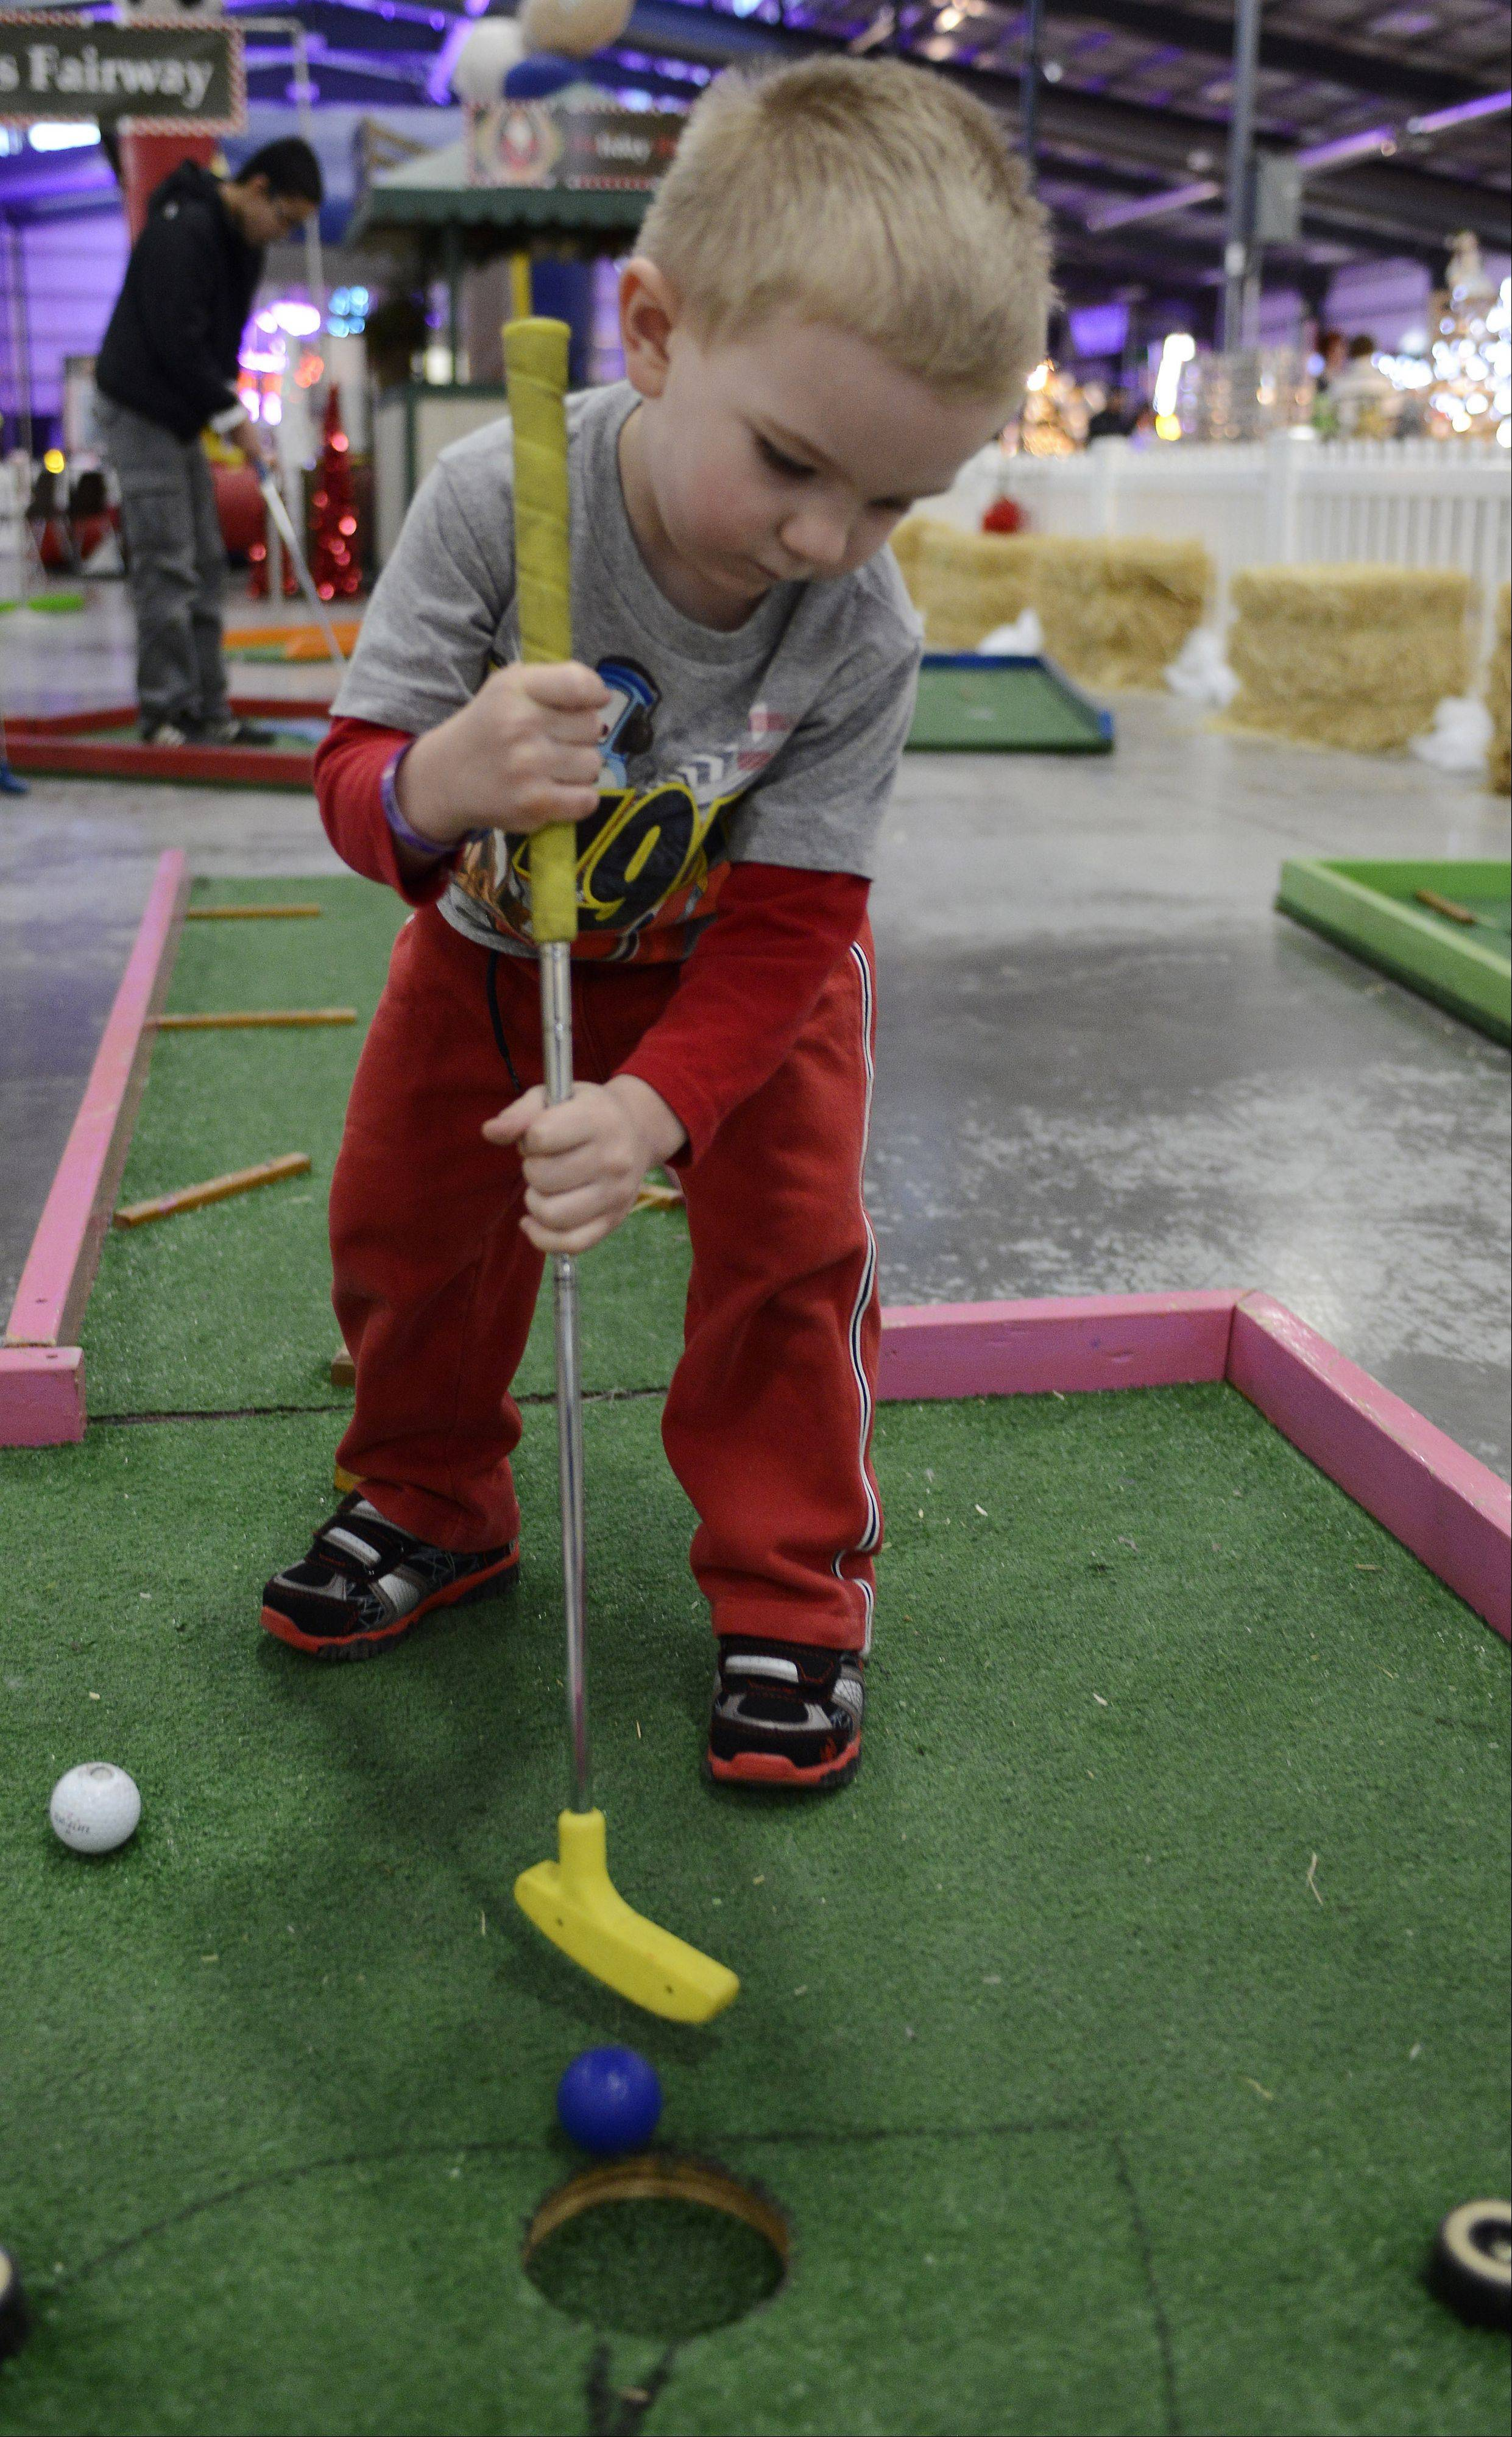 Kaiden Kohler, 3, of Rolling Meadows plays miniature golf during the Holiday Hoedown at the Lake County Fairgrounds Saturday. The event continues today.